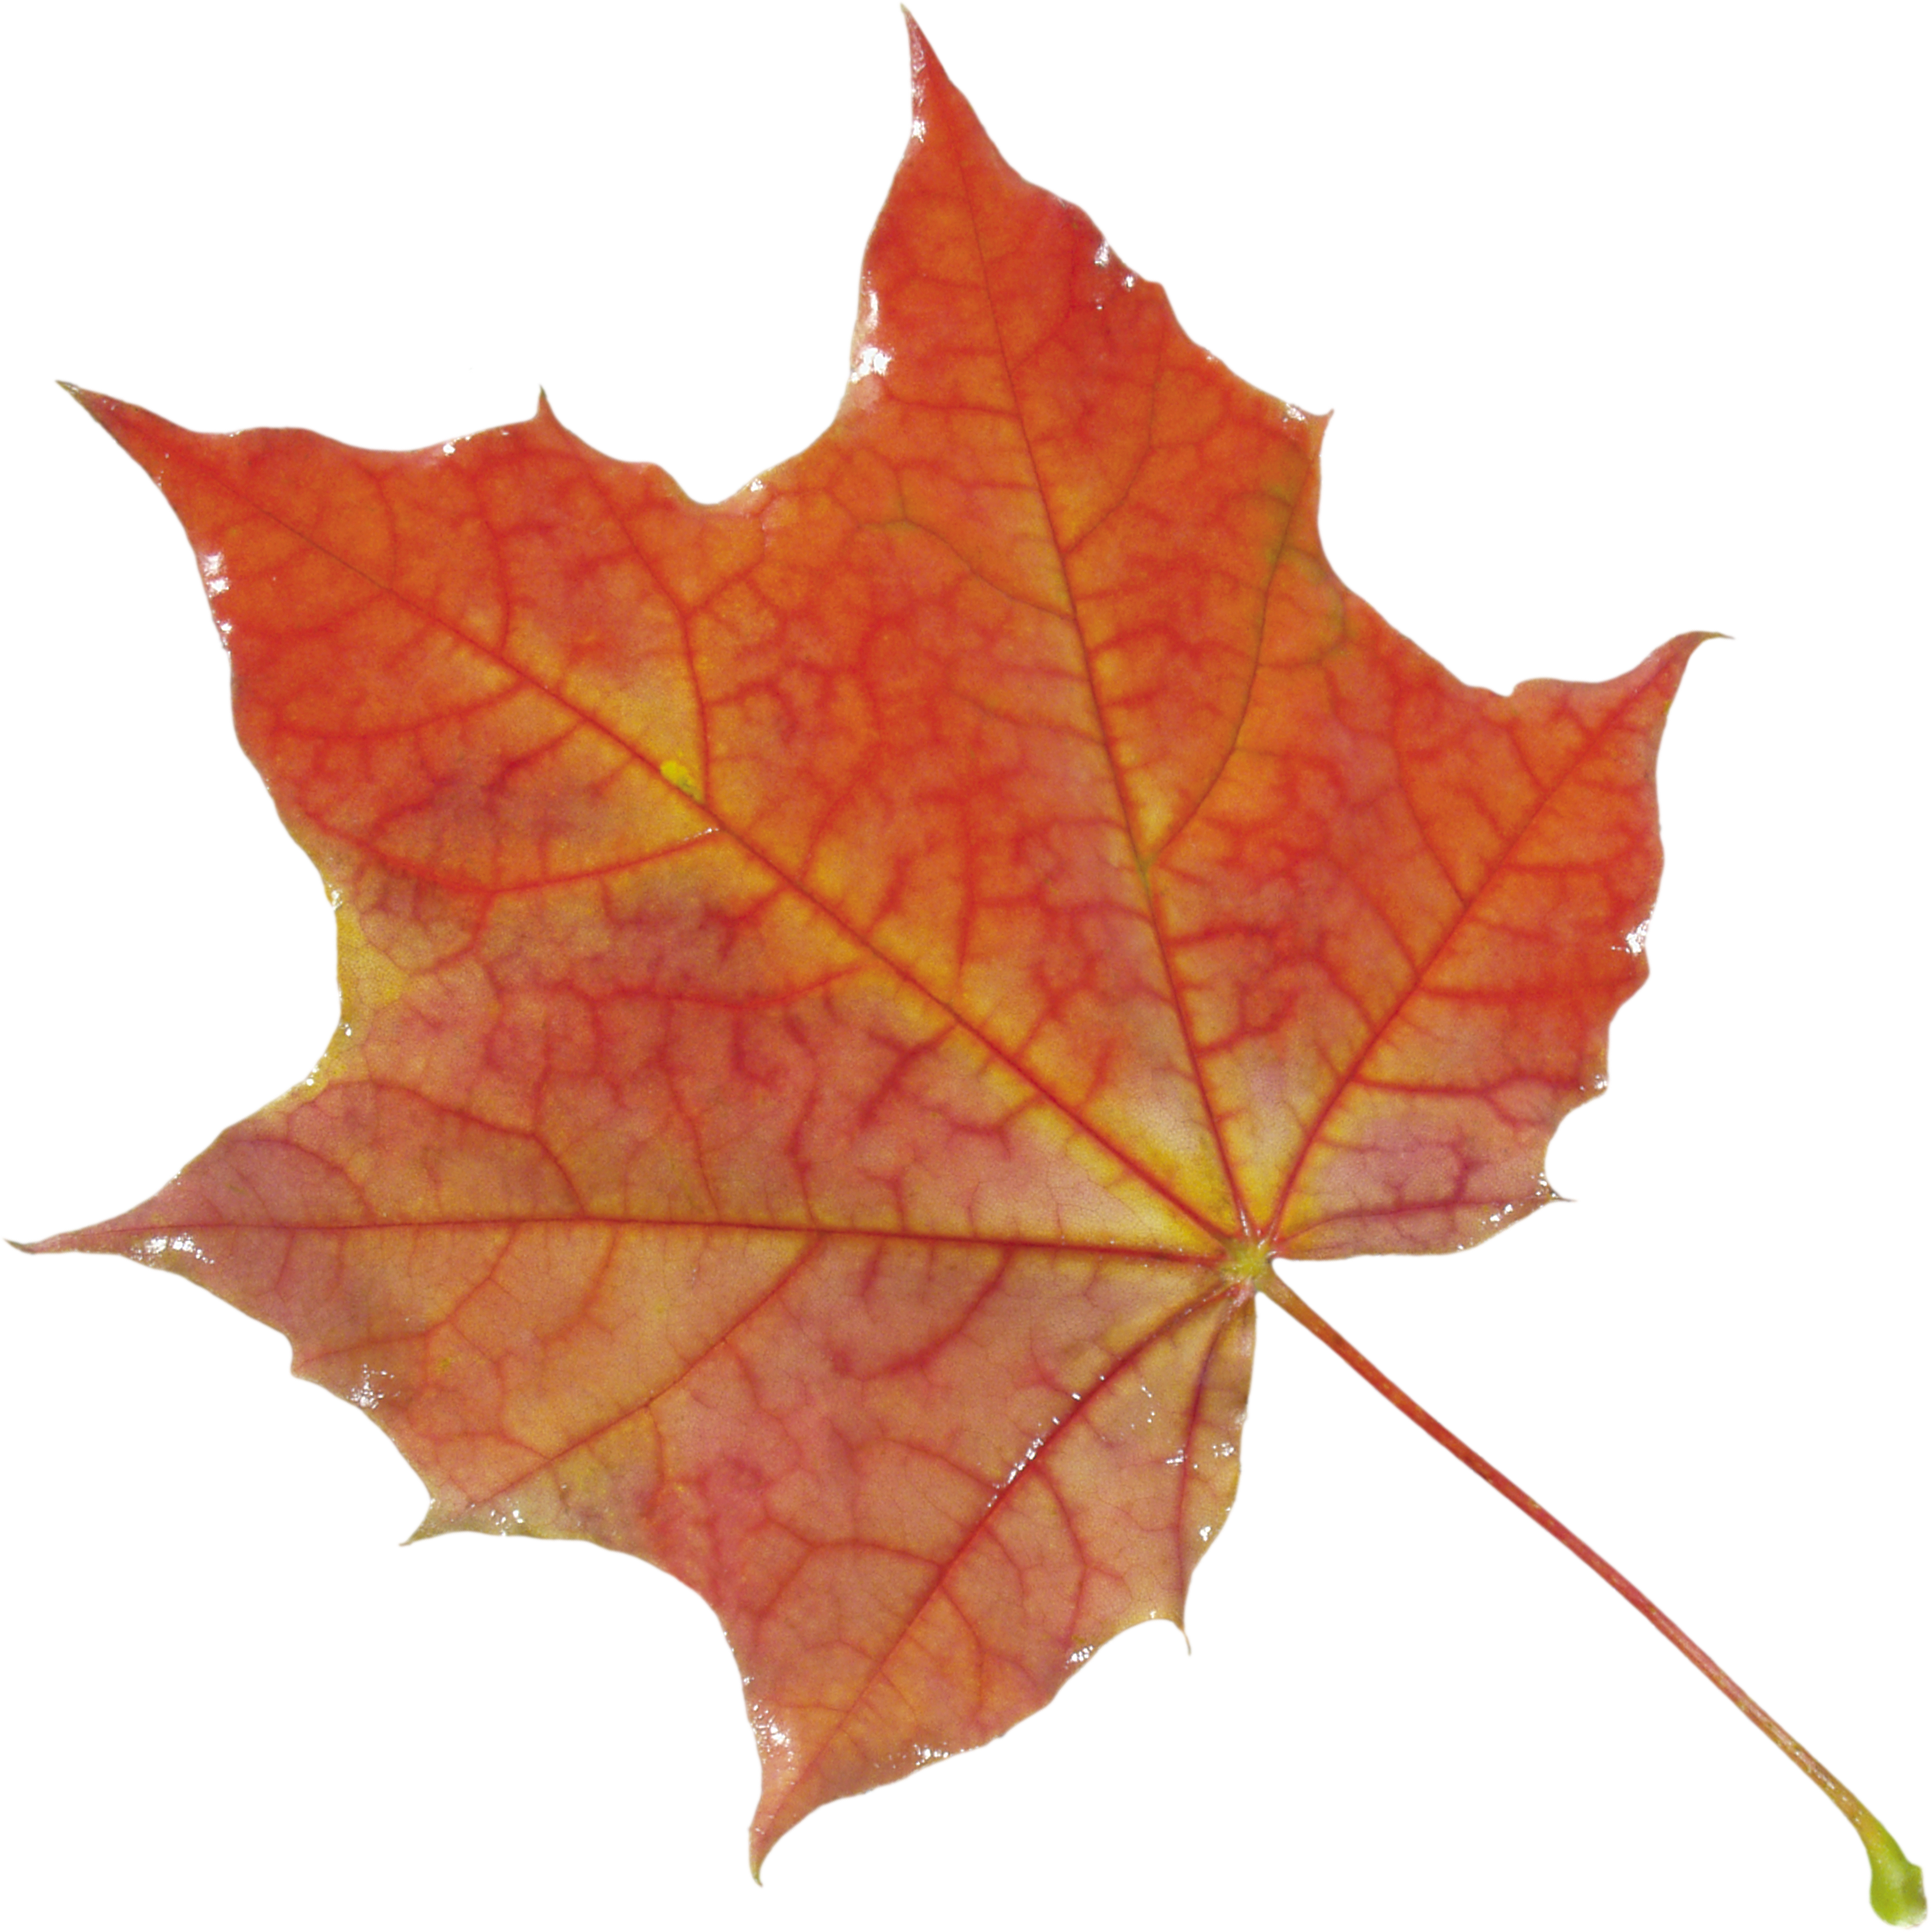 October 25, 2015: Autumn Leaves Wallpapers, 2509x2510 px